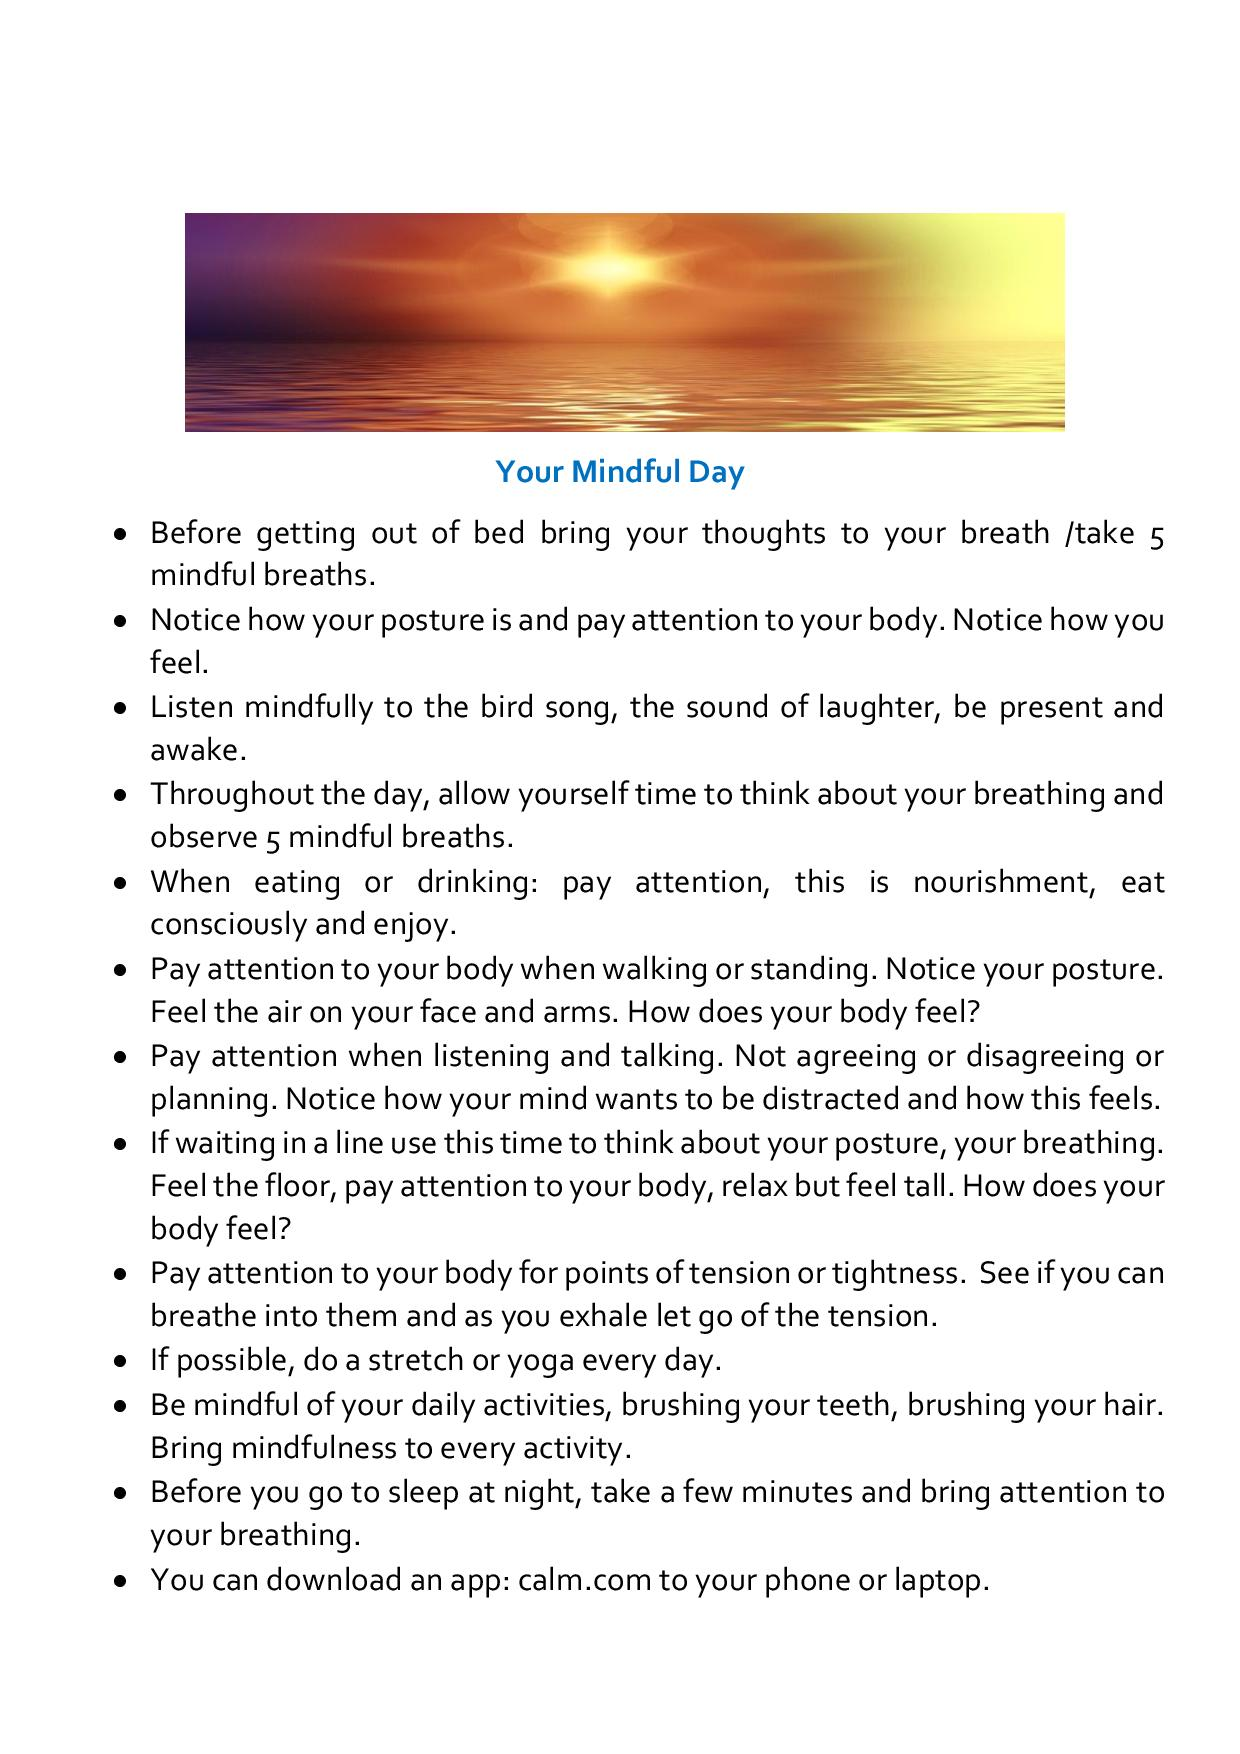 Your Mindful Day